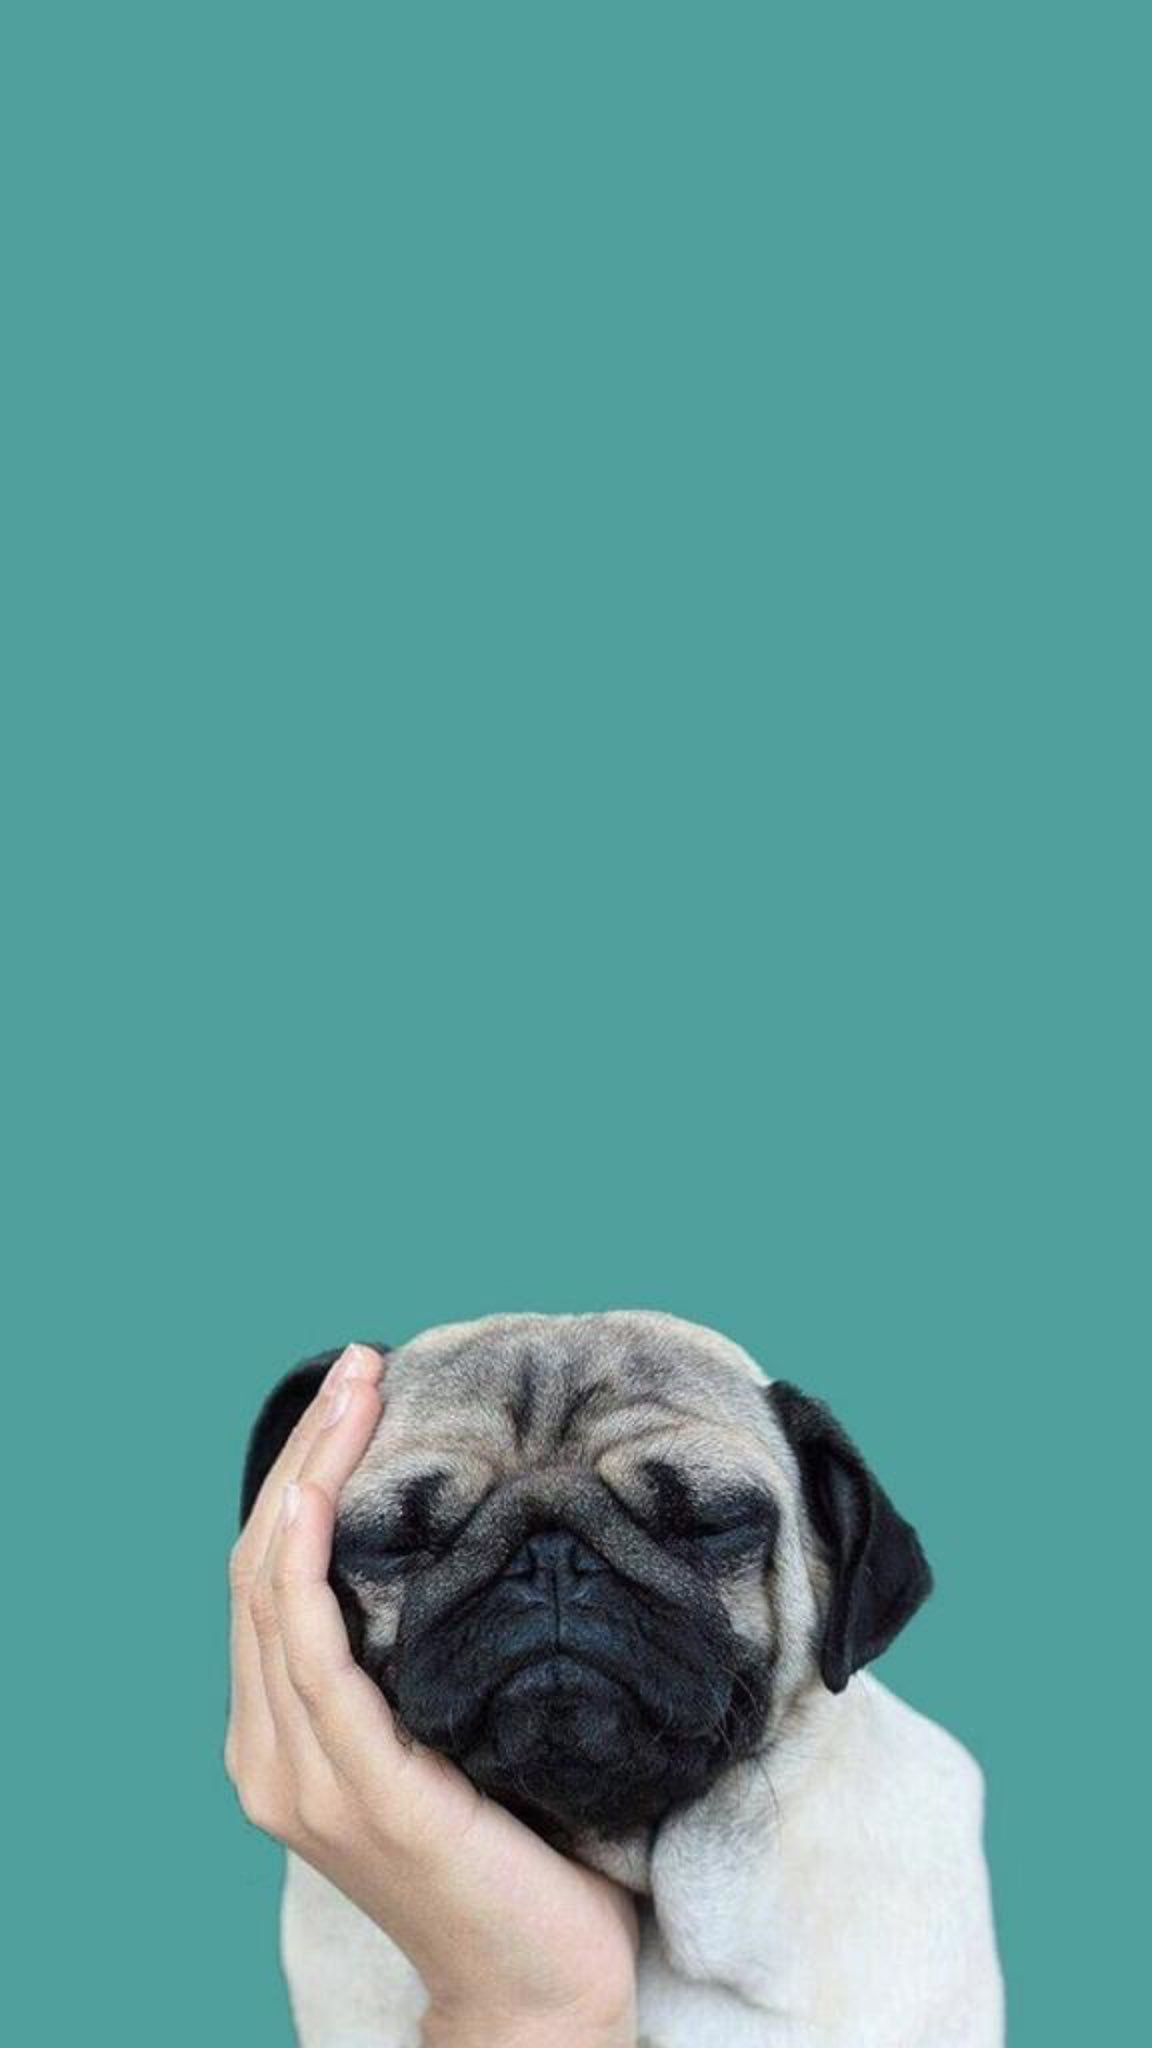 PUG Happy Cute Dog Smiling Puppy iphone case